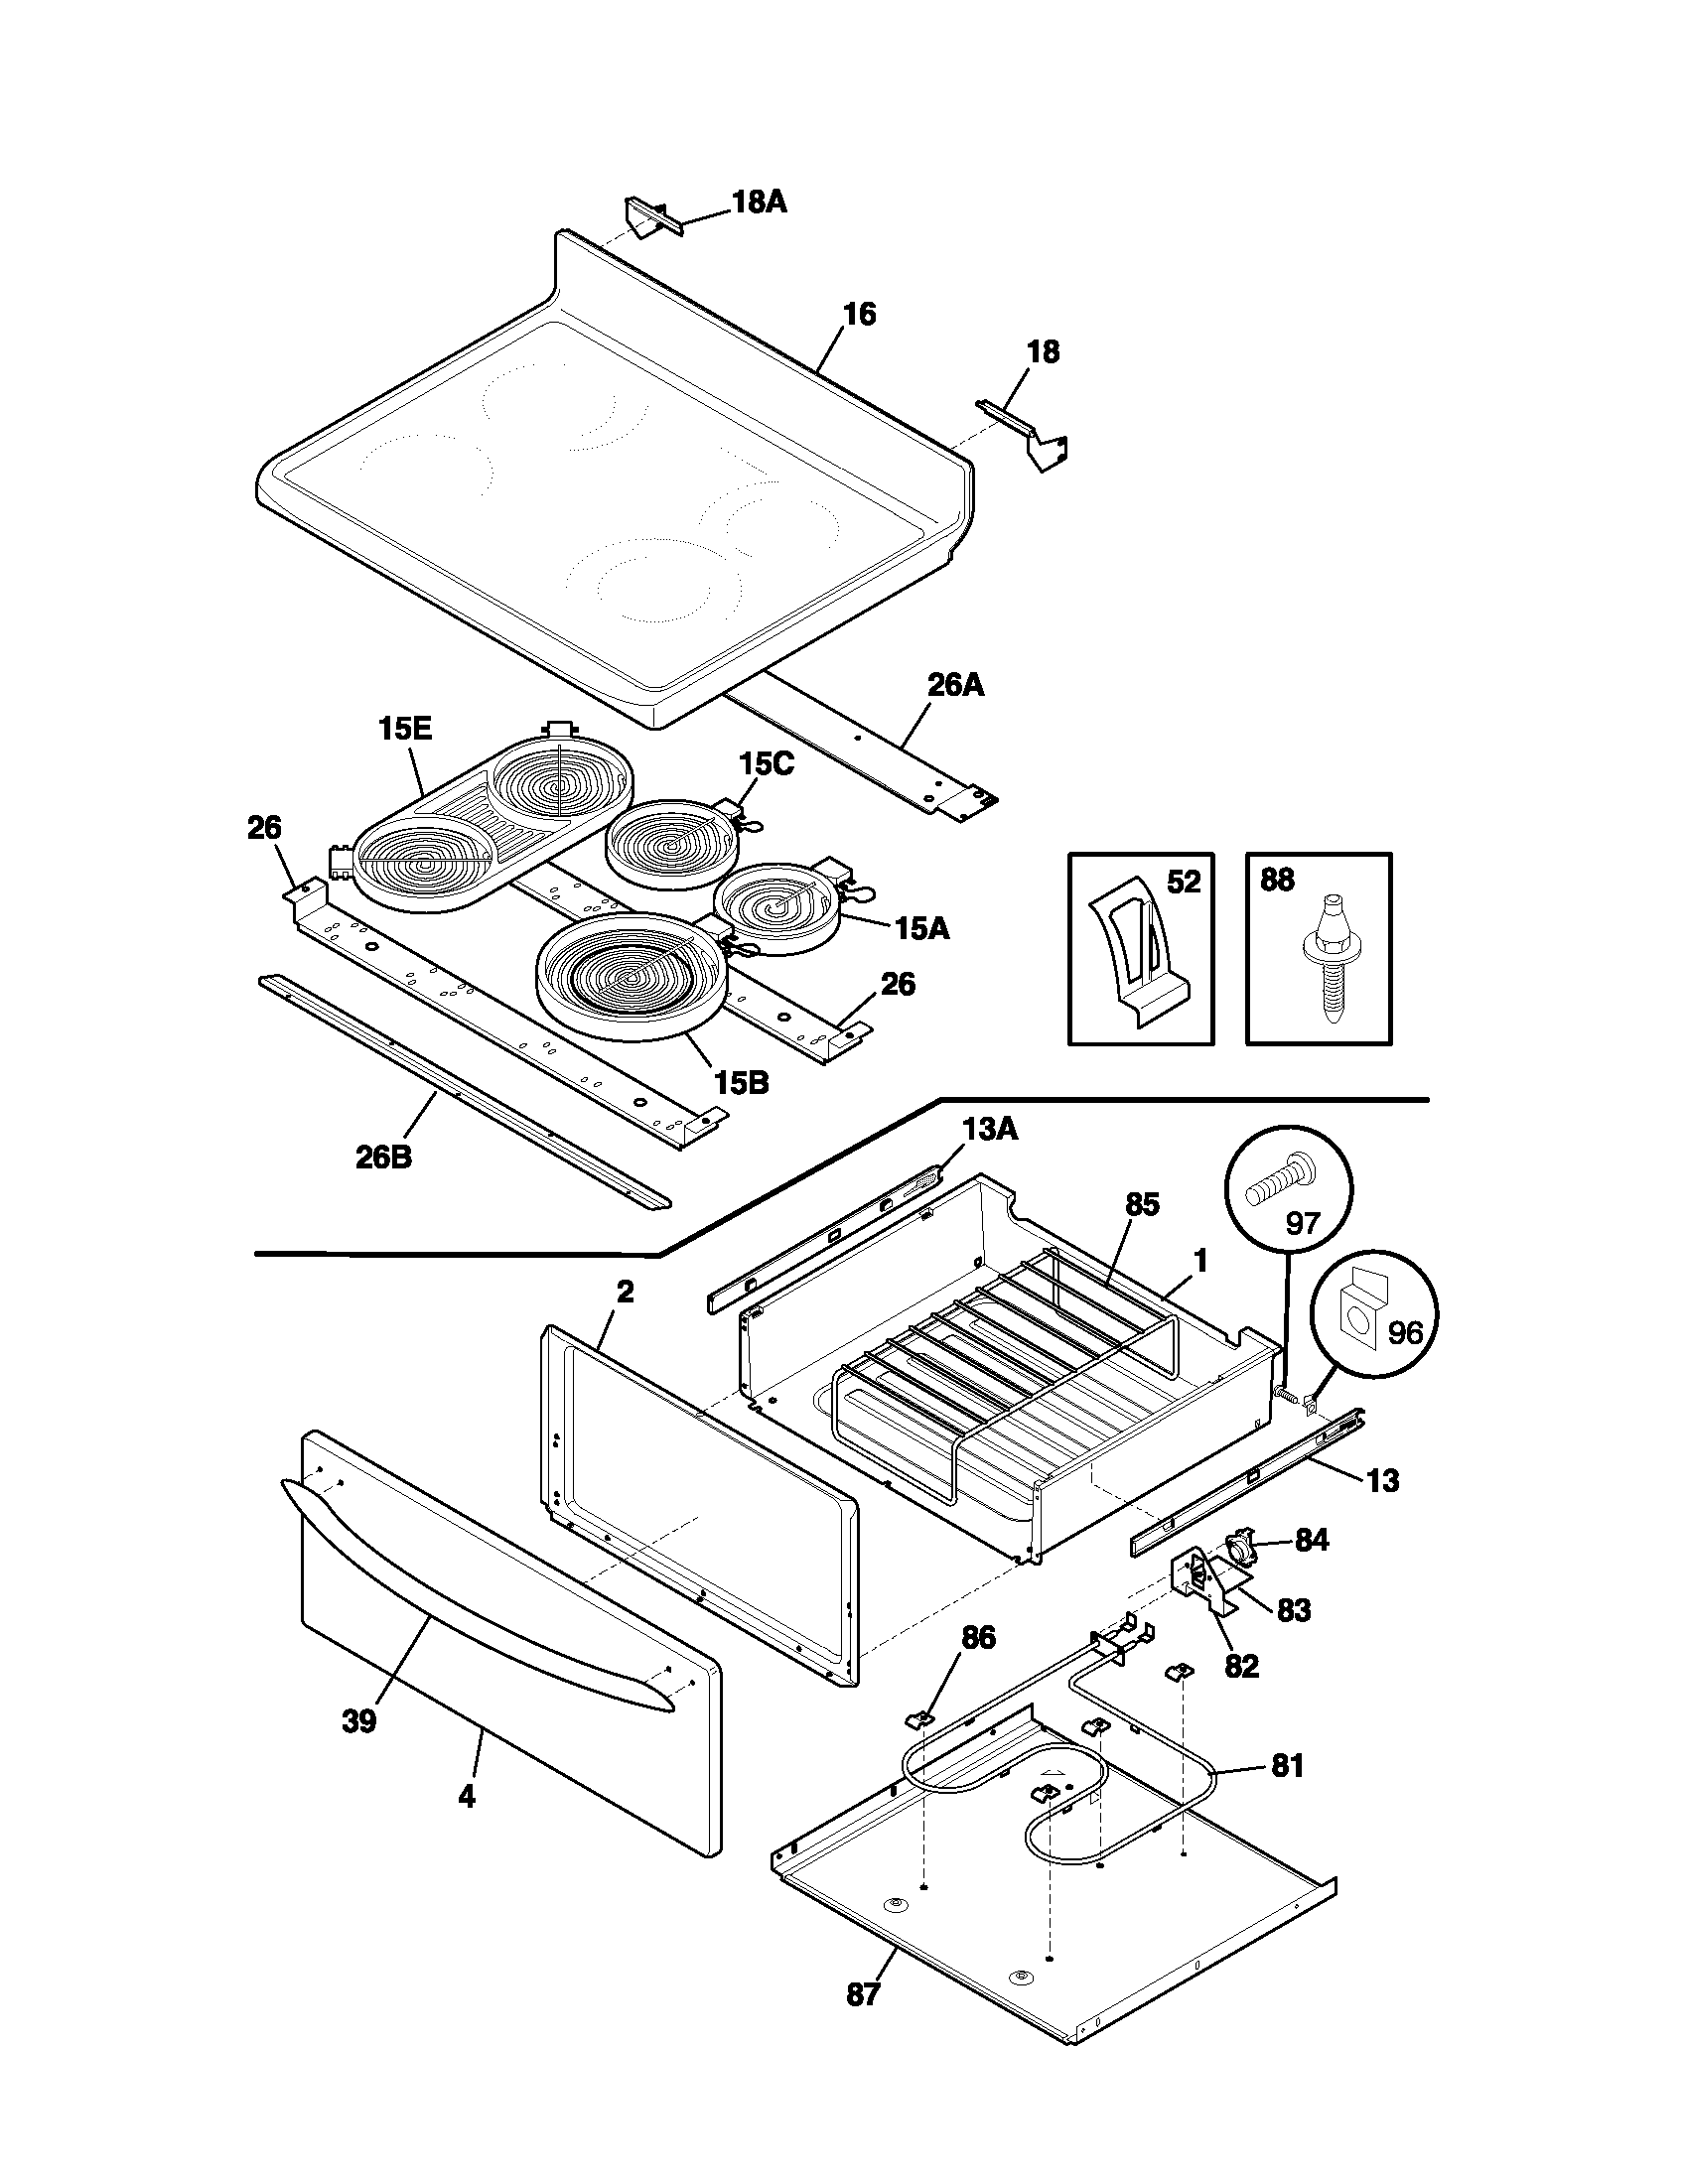 TOP/DRAWER Diagram & Parts List for Model plef398aca